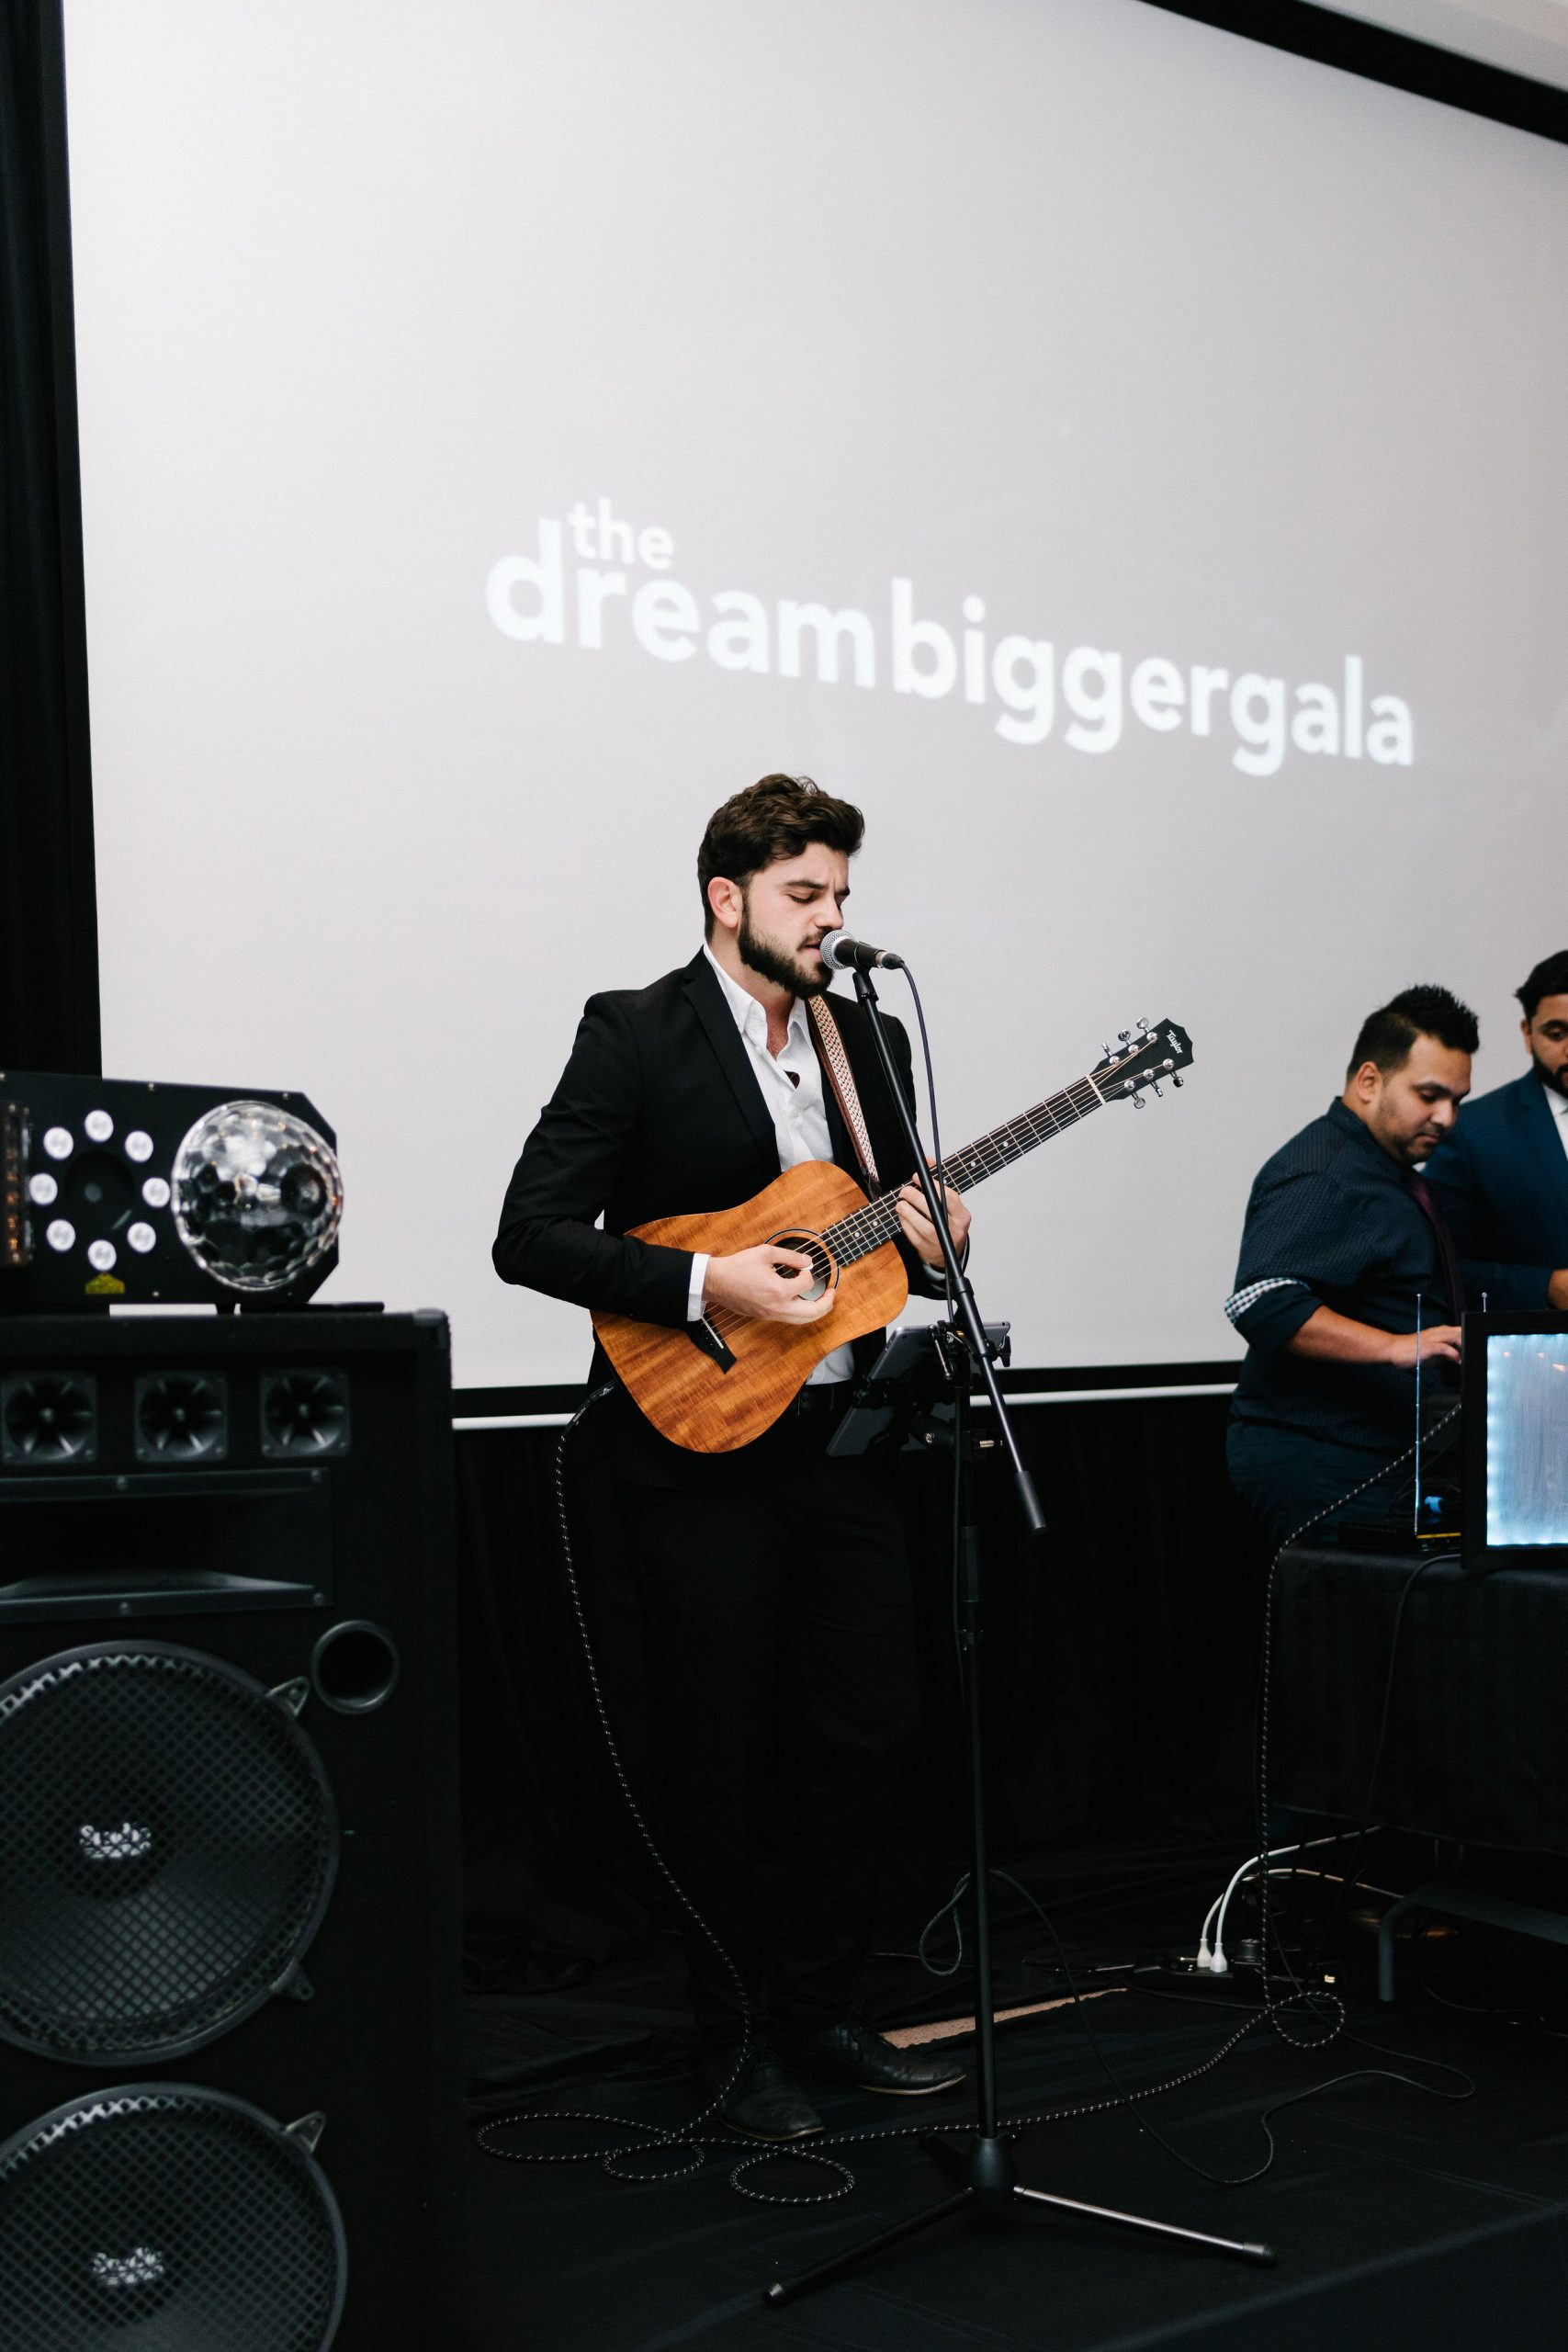 Dream Bigger Gala Entertainment at Le Treport